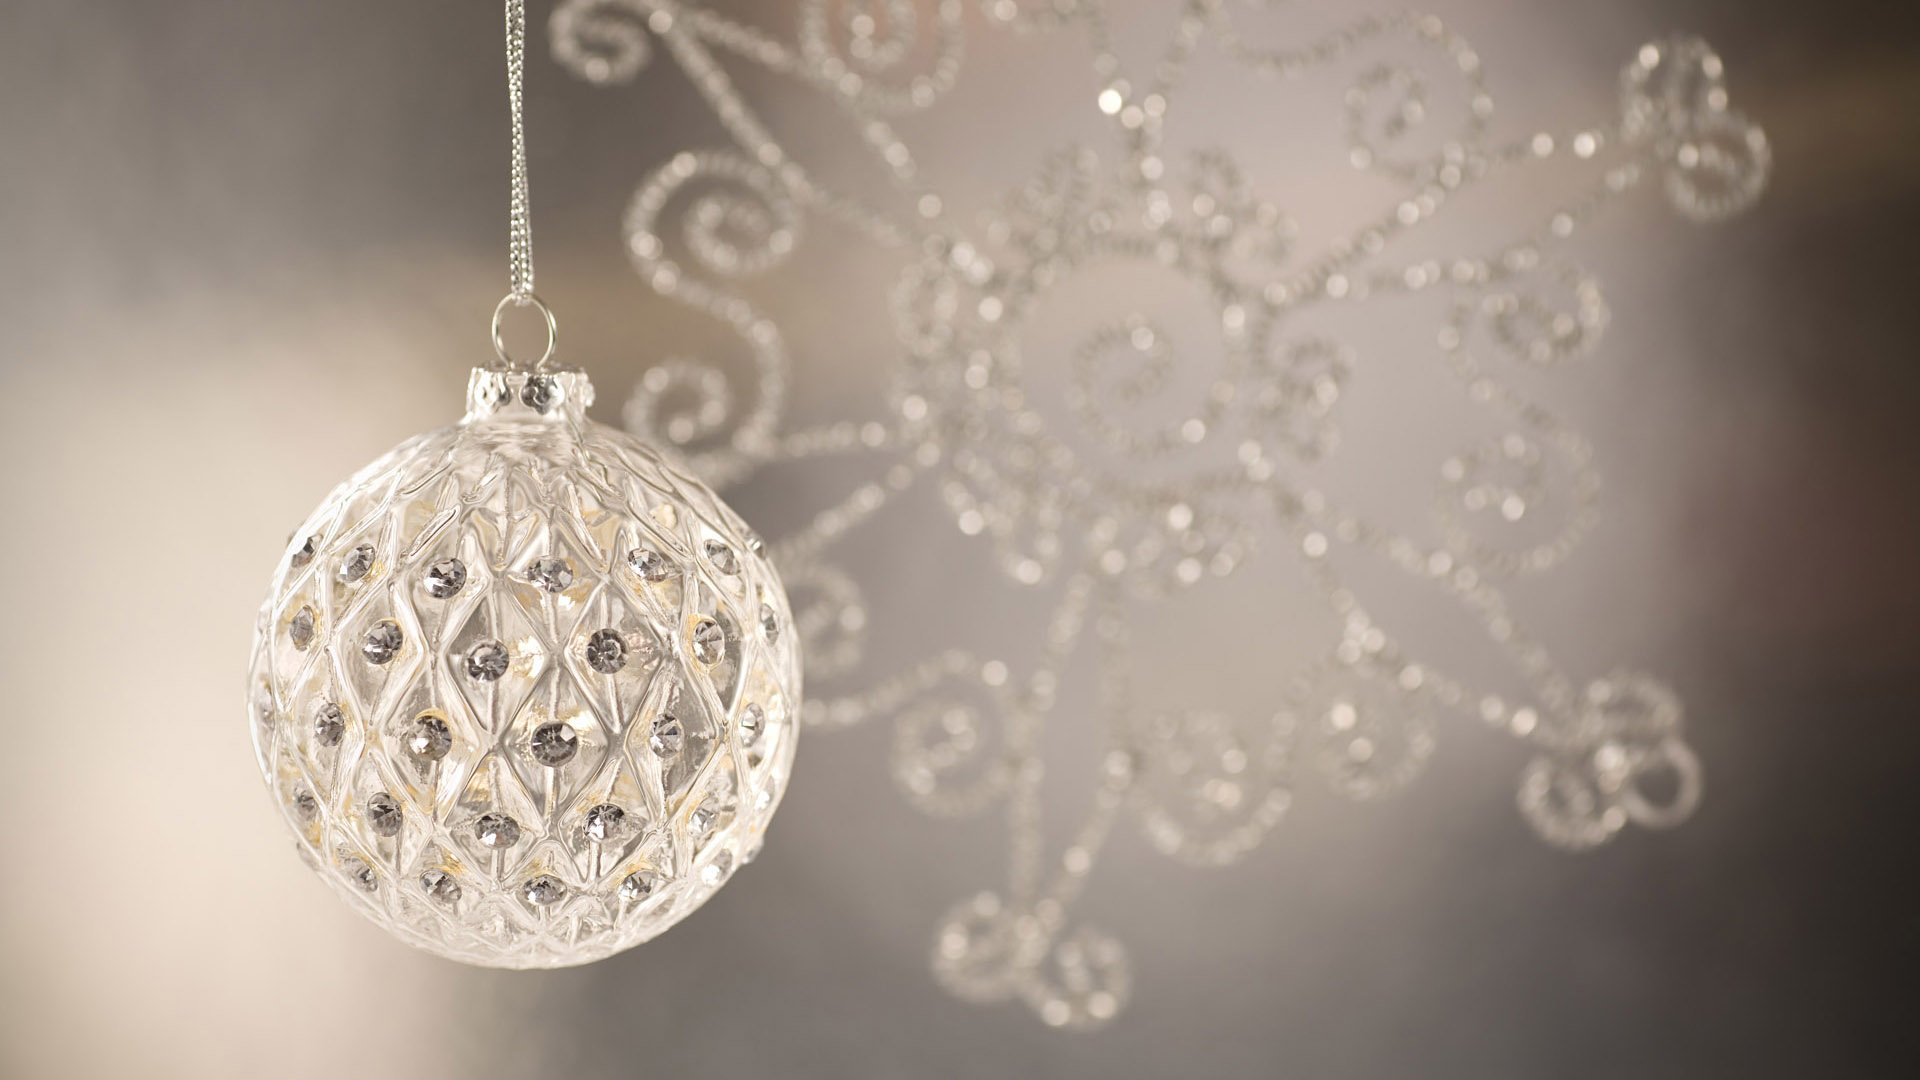 christmas-silver-ball-decoration-bokeh-blur-background-1920x1080-1920%C3%971080-wallpaper-wpc9003564